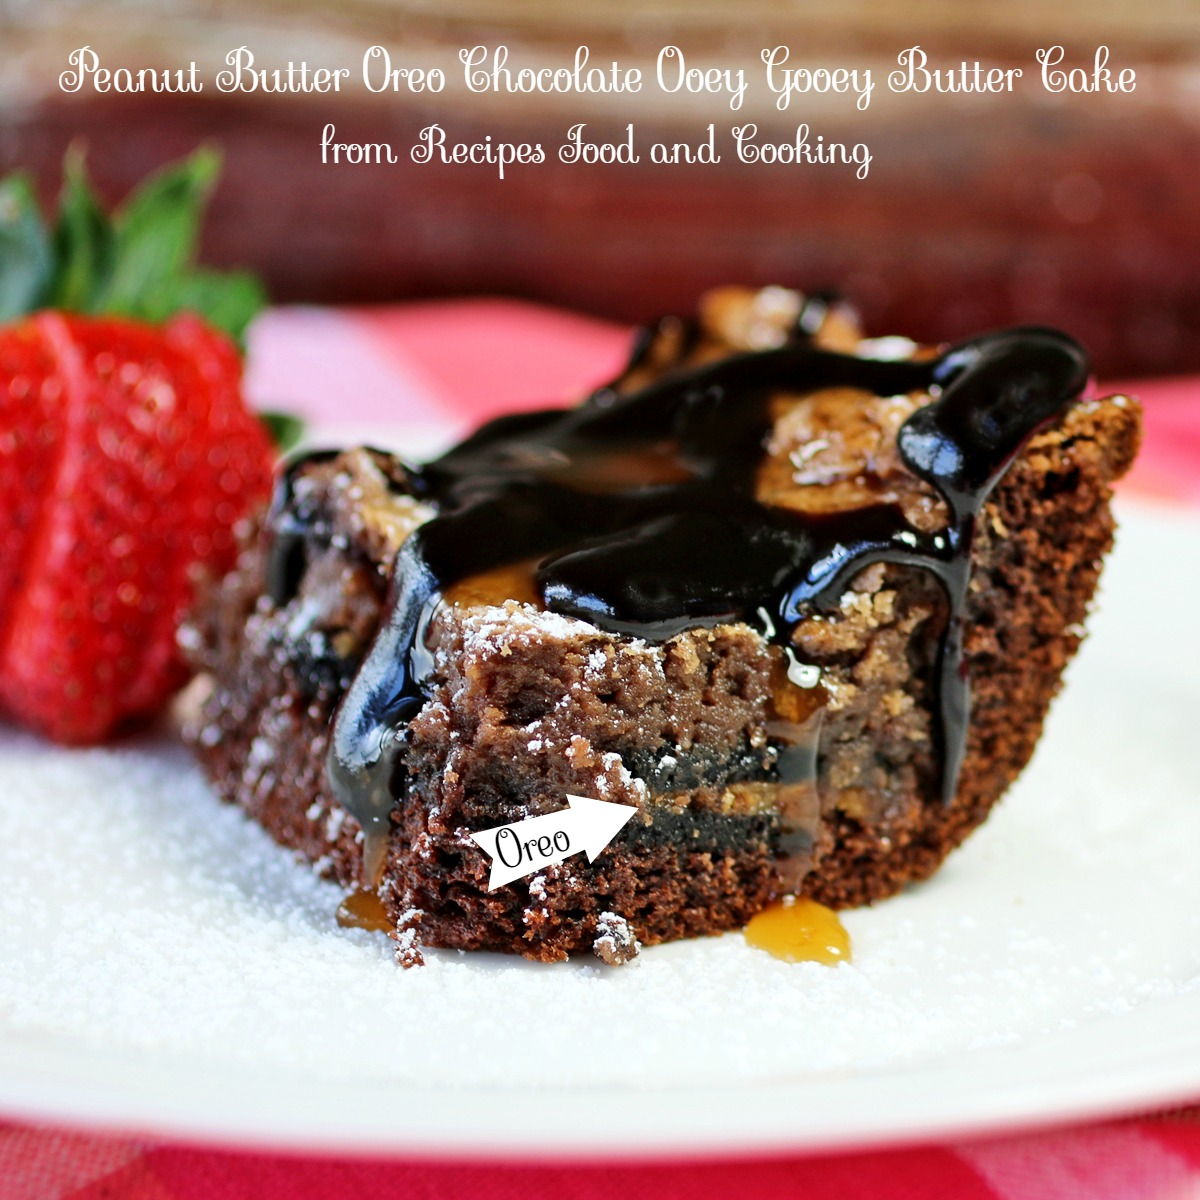 Peanut Butter Oreo Chocolate Ooey Gooey Butter Cake